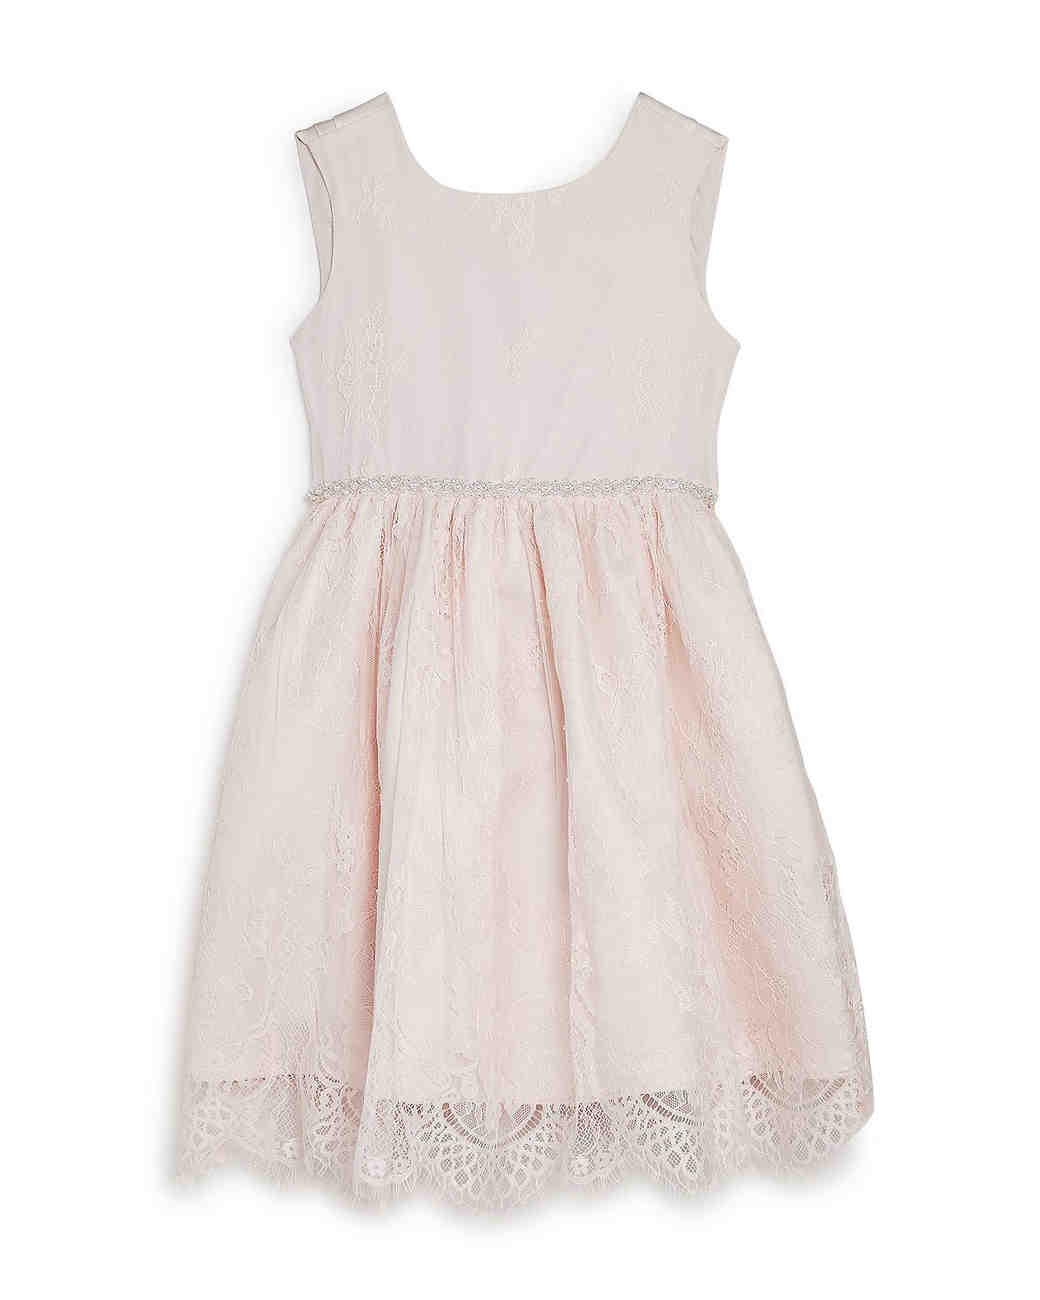 summer flower girl outfit light pink lace dress